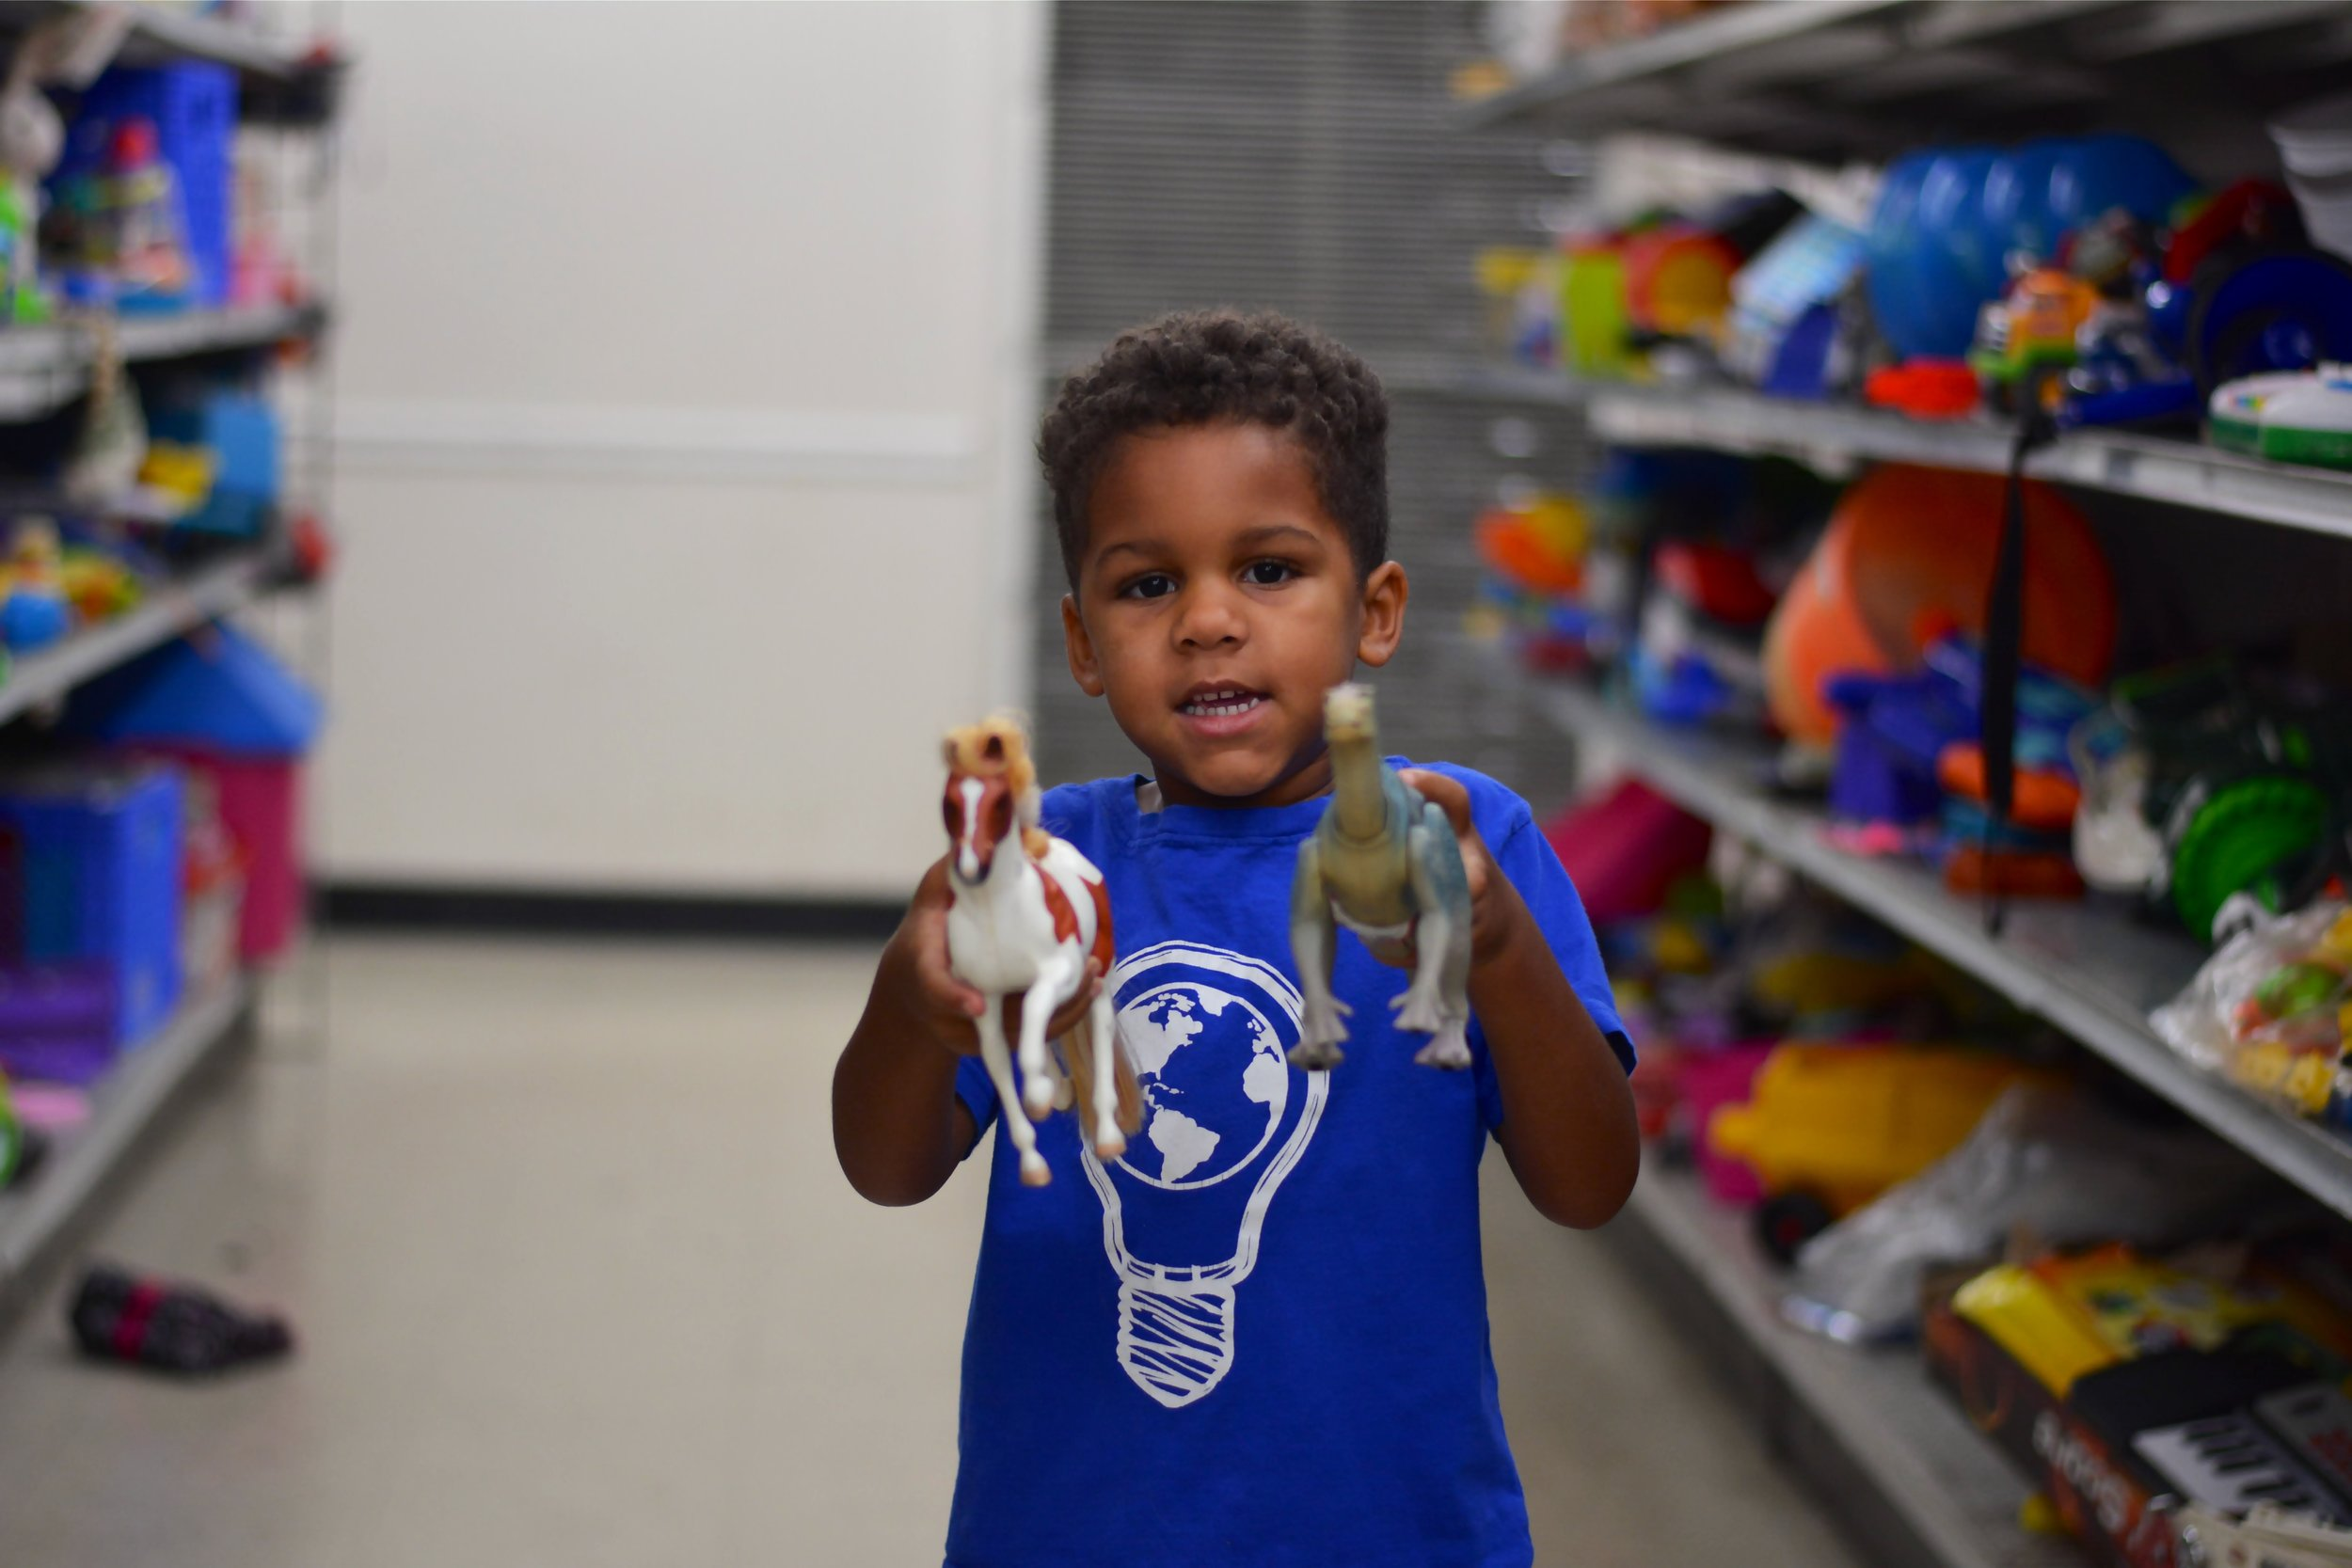 Here is Braxton with his new dinosaur friend!